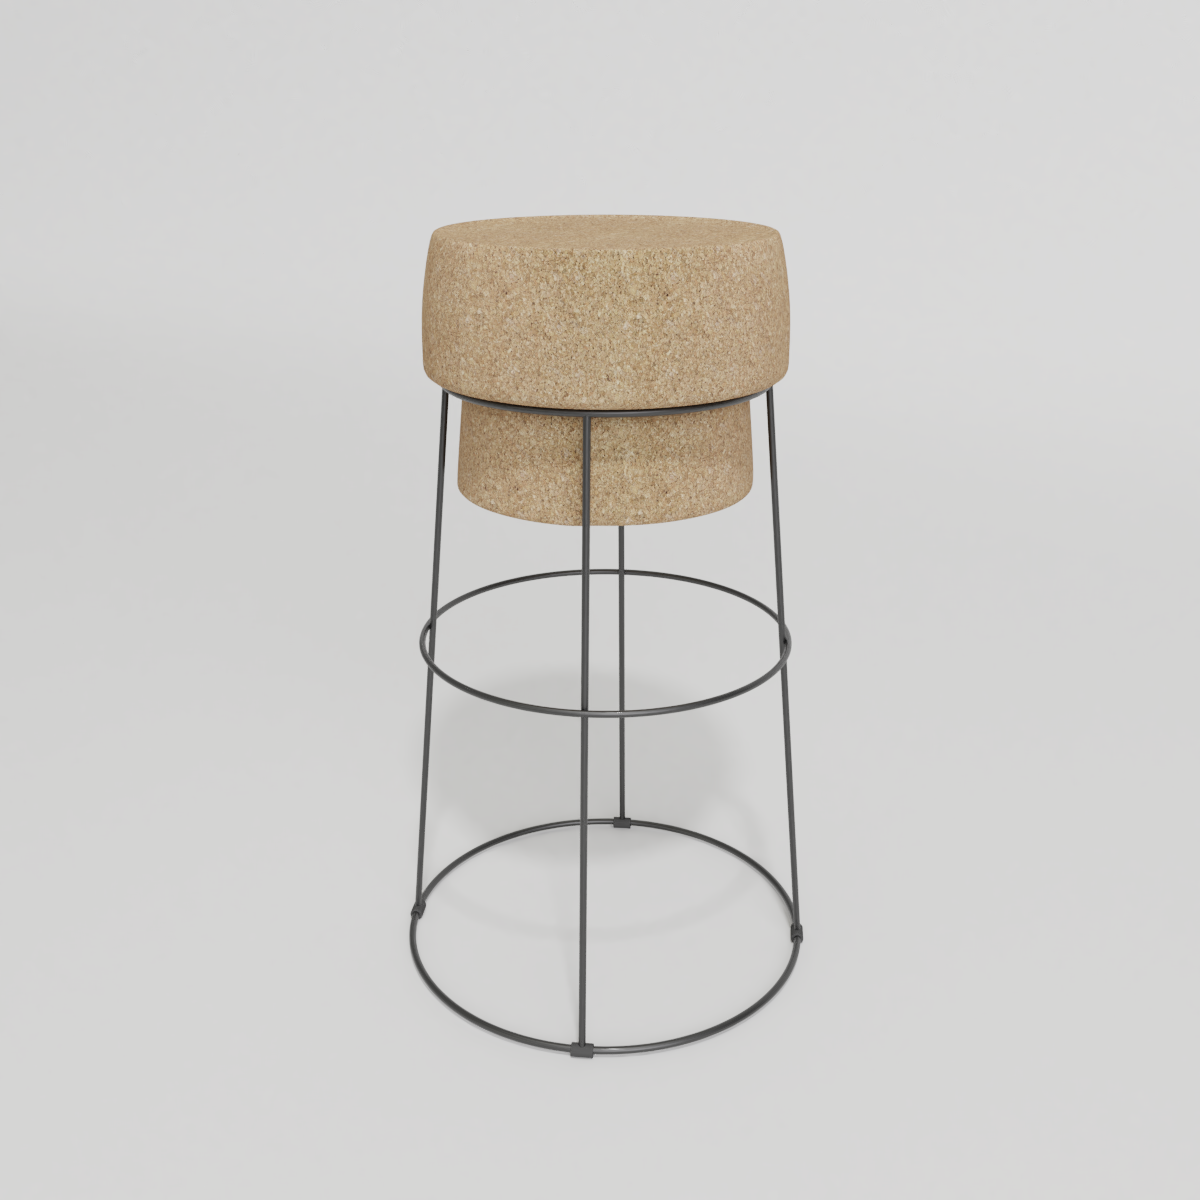 Cork stool preview image 5